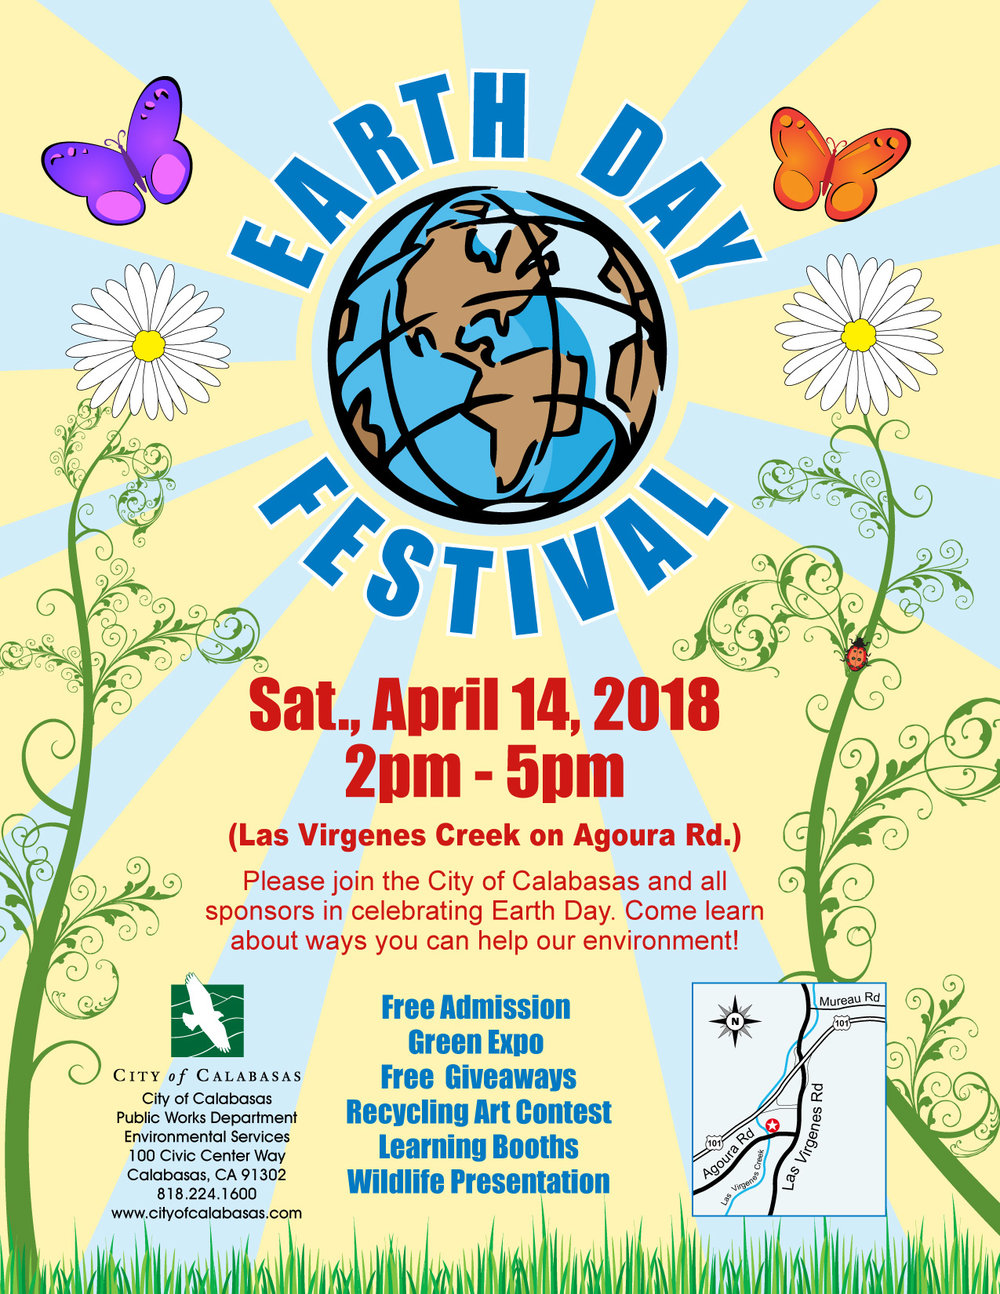 Come join Camellia N. & Friends to CELEBRATE the EARTH!  We will be creekside in Calabasas, CA. in honor of EARTH DAY 2018 and can't wait to see you there!